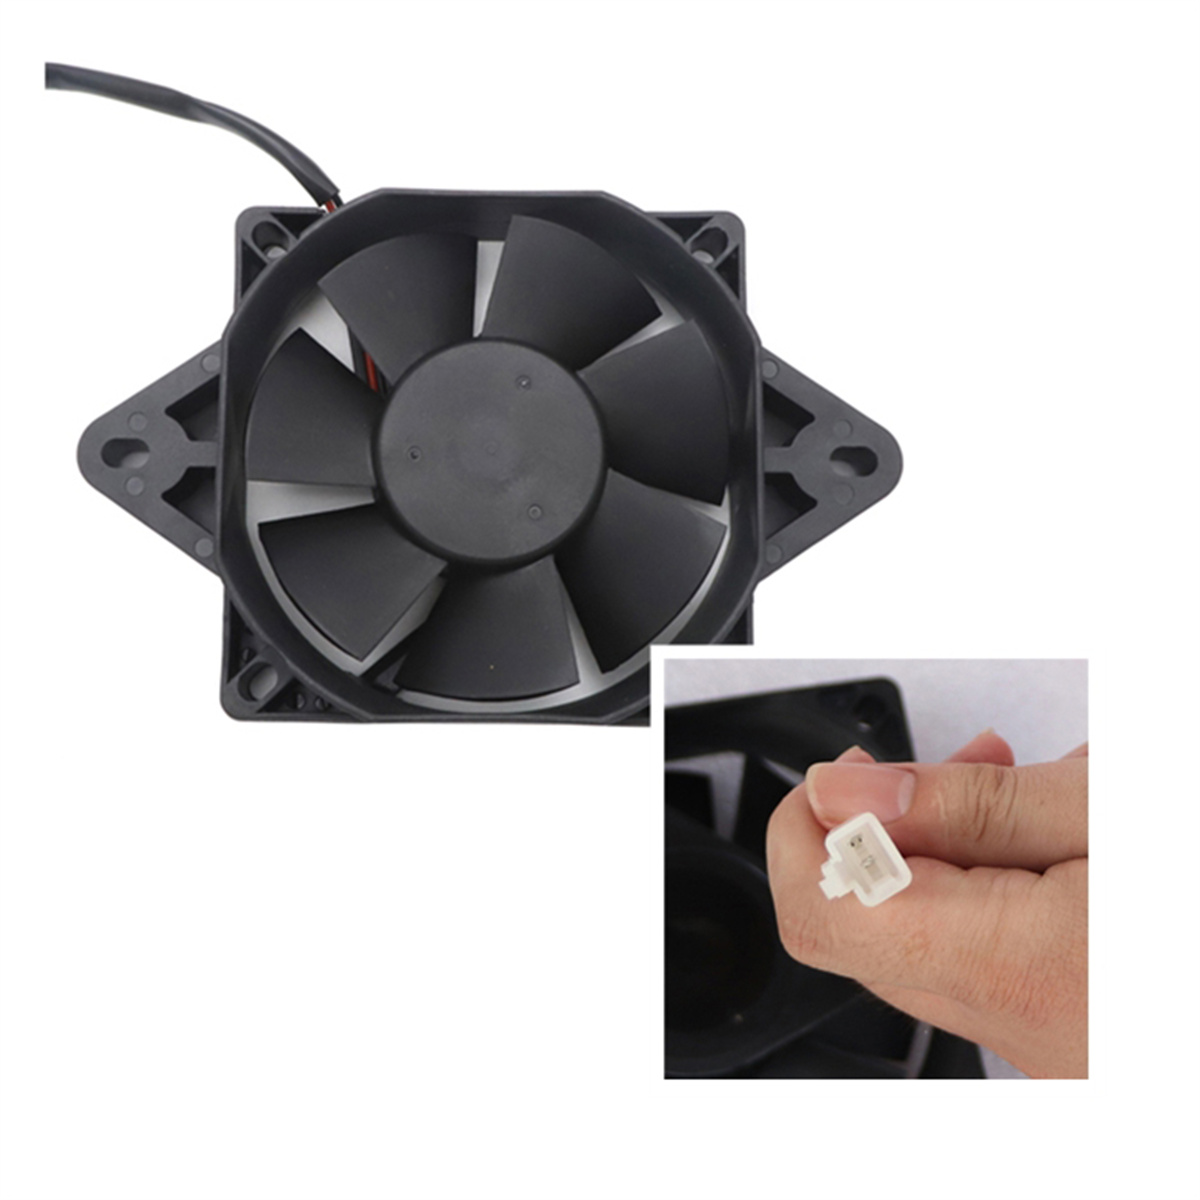 Electric ATV Radiator Cooling Fan Radiator Cooling Fans For CRF YZF KXF RMZ KLX DRZ Quad ATV Go Kart Buggy Motorcycle Accessorie